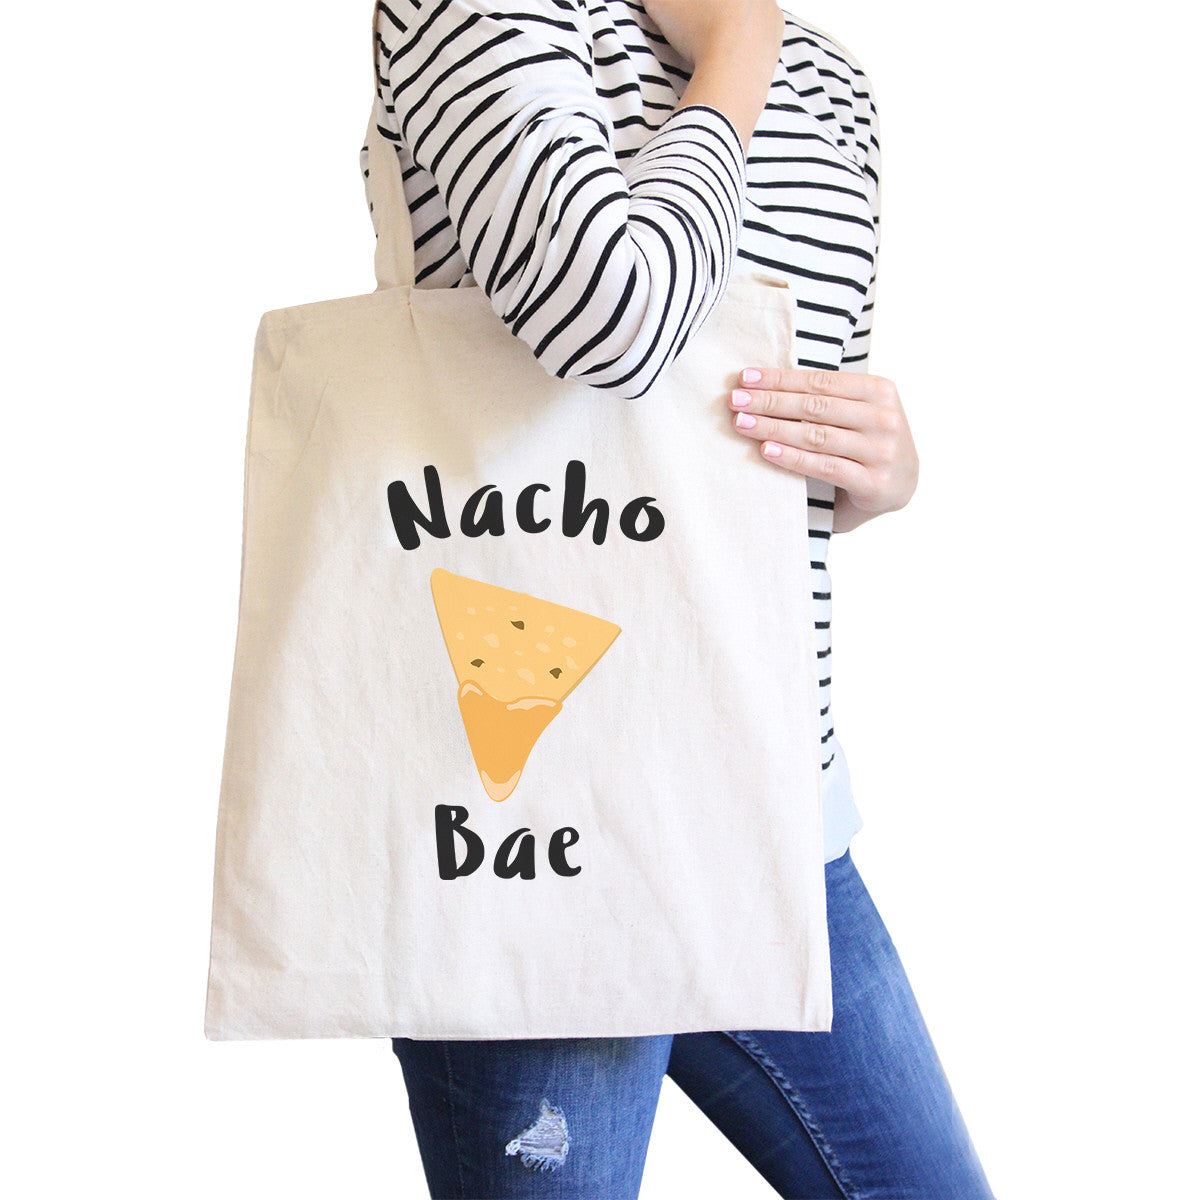 Nocho Bae Natural Eco Bag Cute Design Gift Ideas For Food Lovers ...